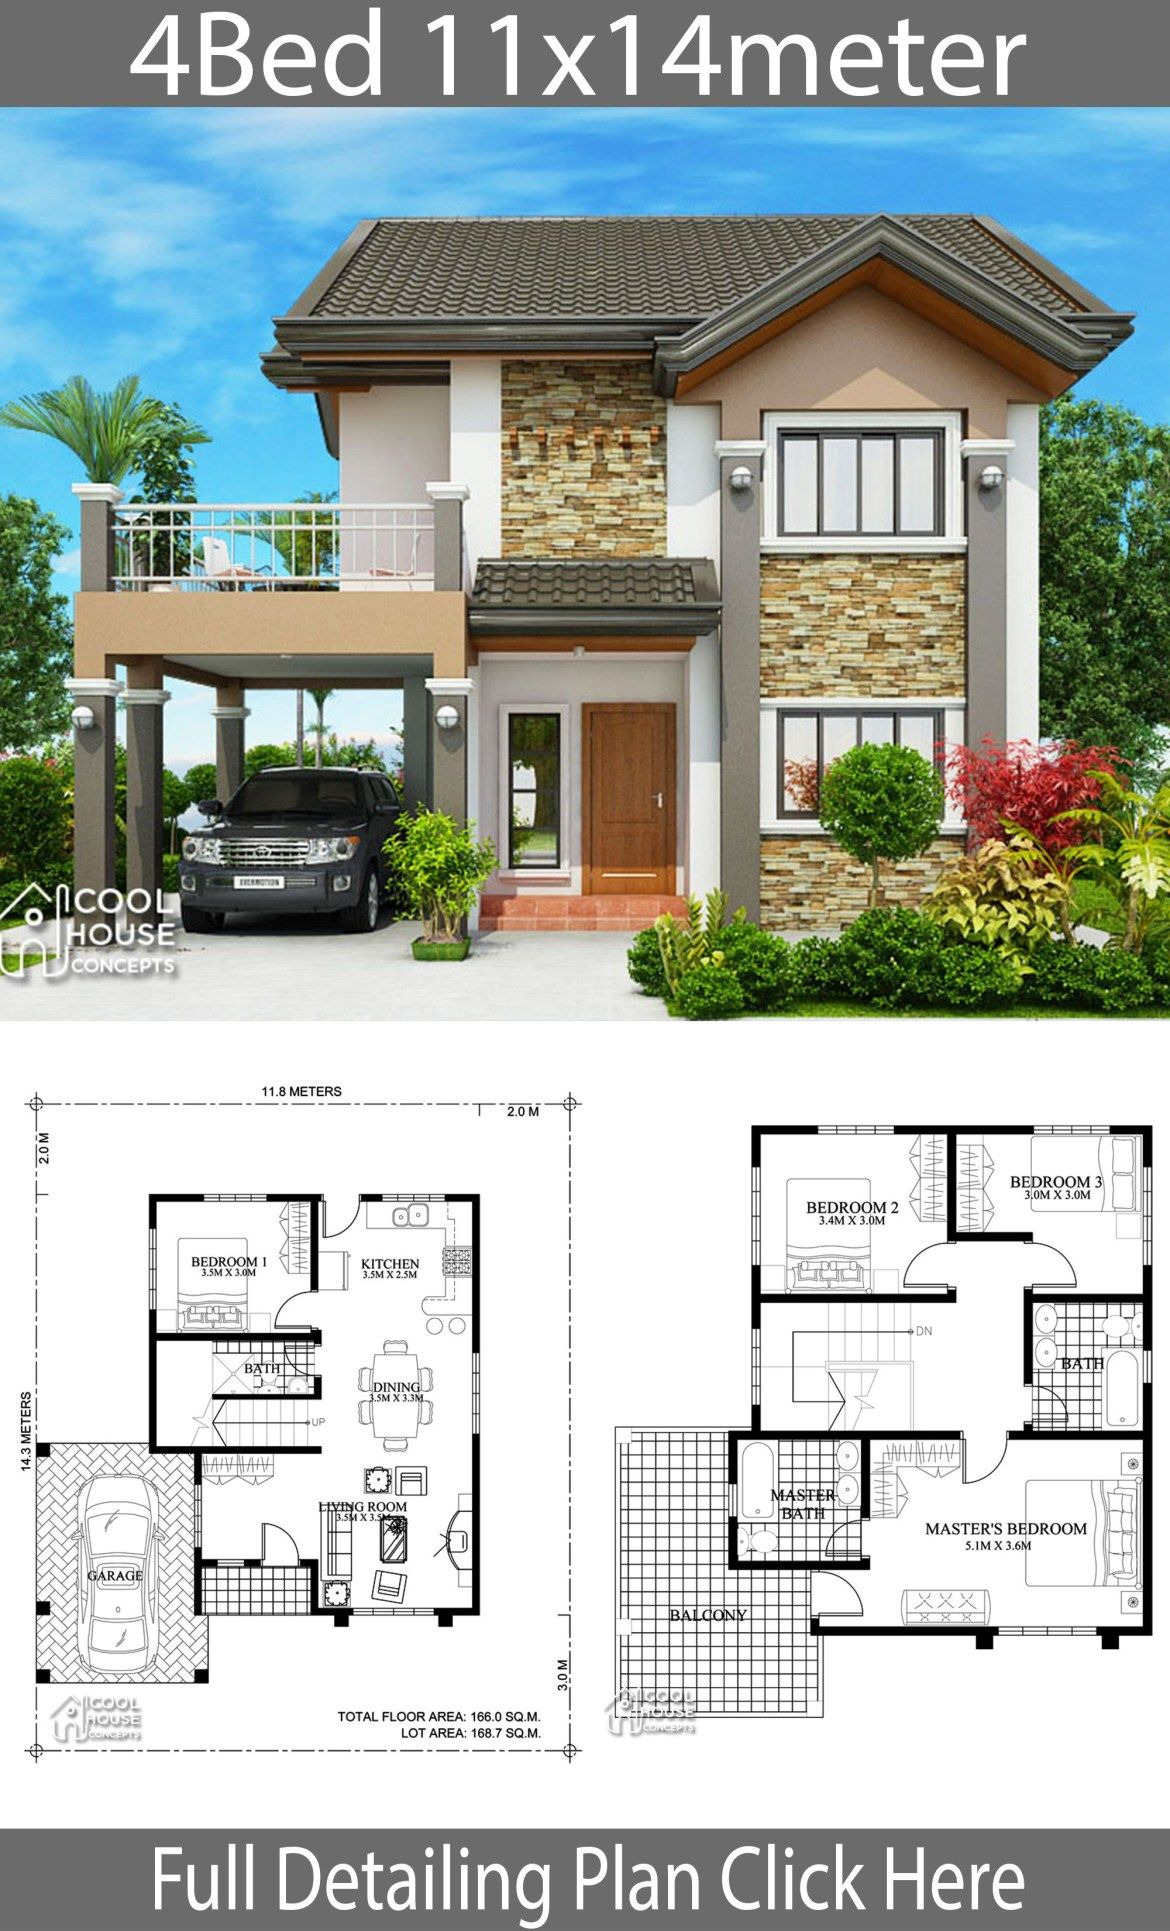 House Plans for Duplexes Three Bedroom Fresh Home Design Plan 11x14m with 4 Bedrooms